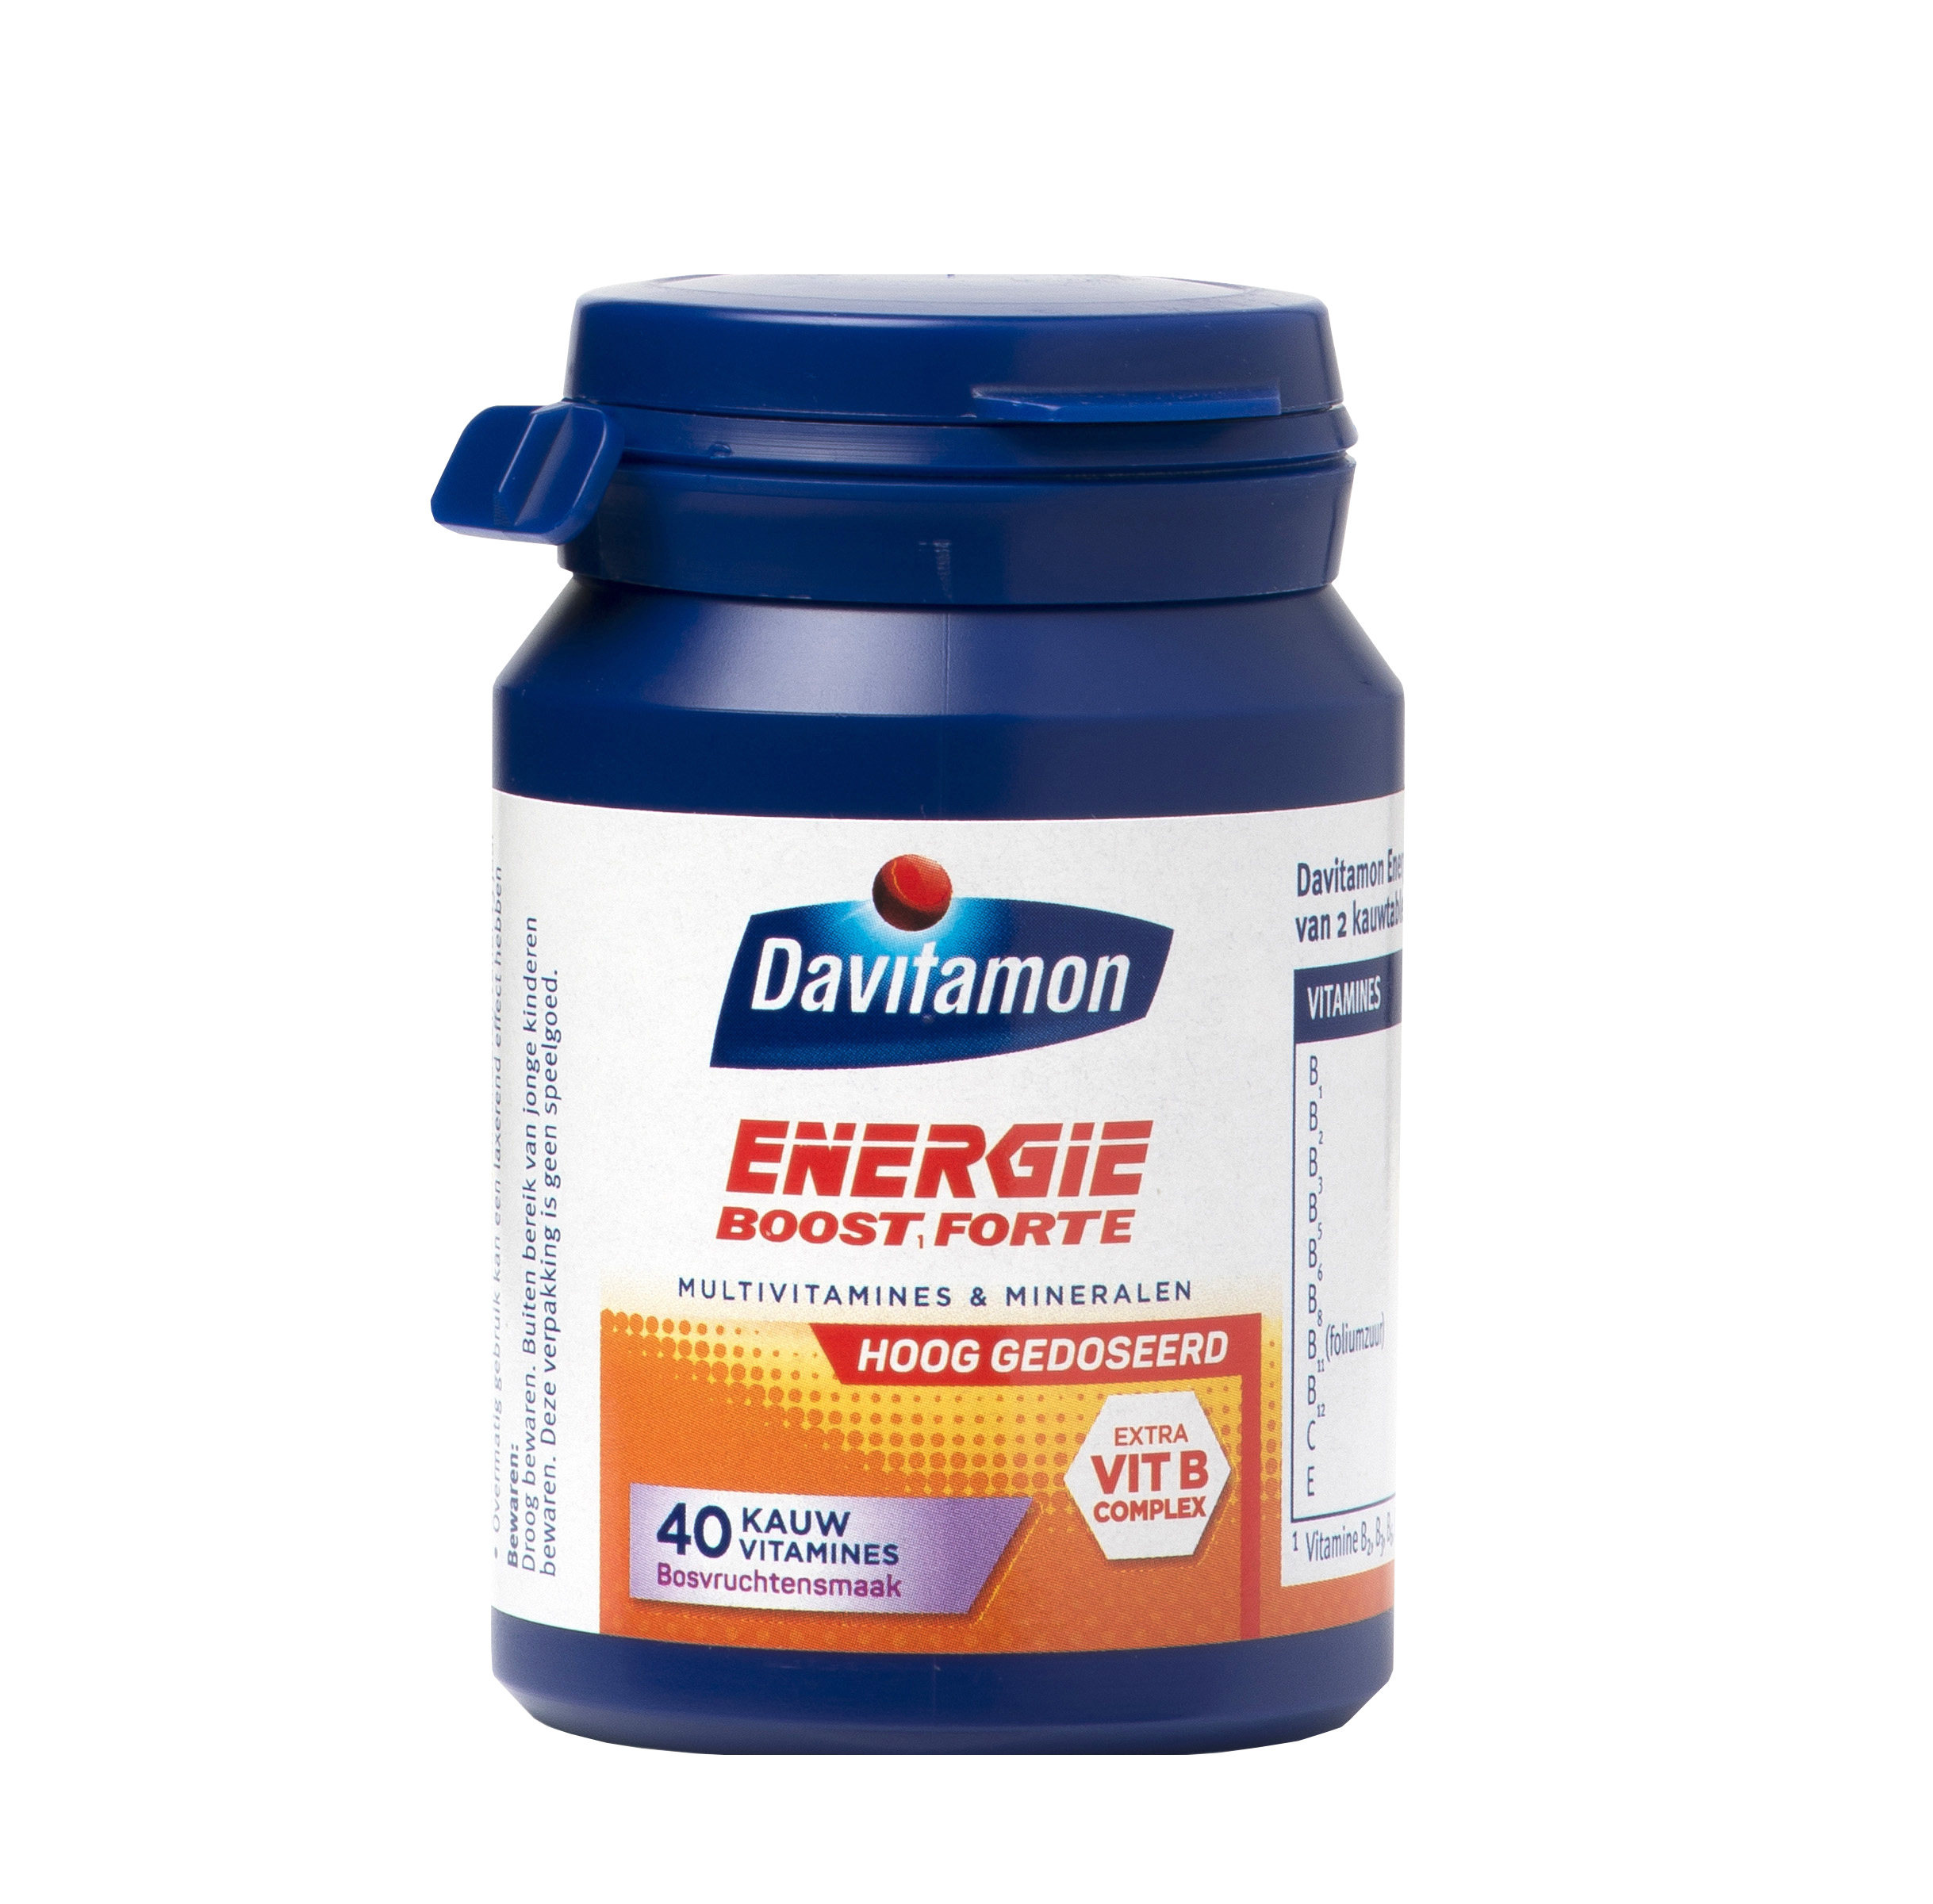 Davitamon Energie Boost Forte Kauwvitamines Product